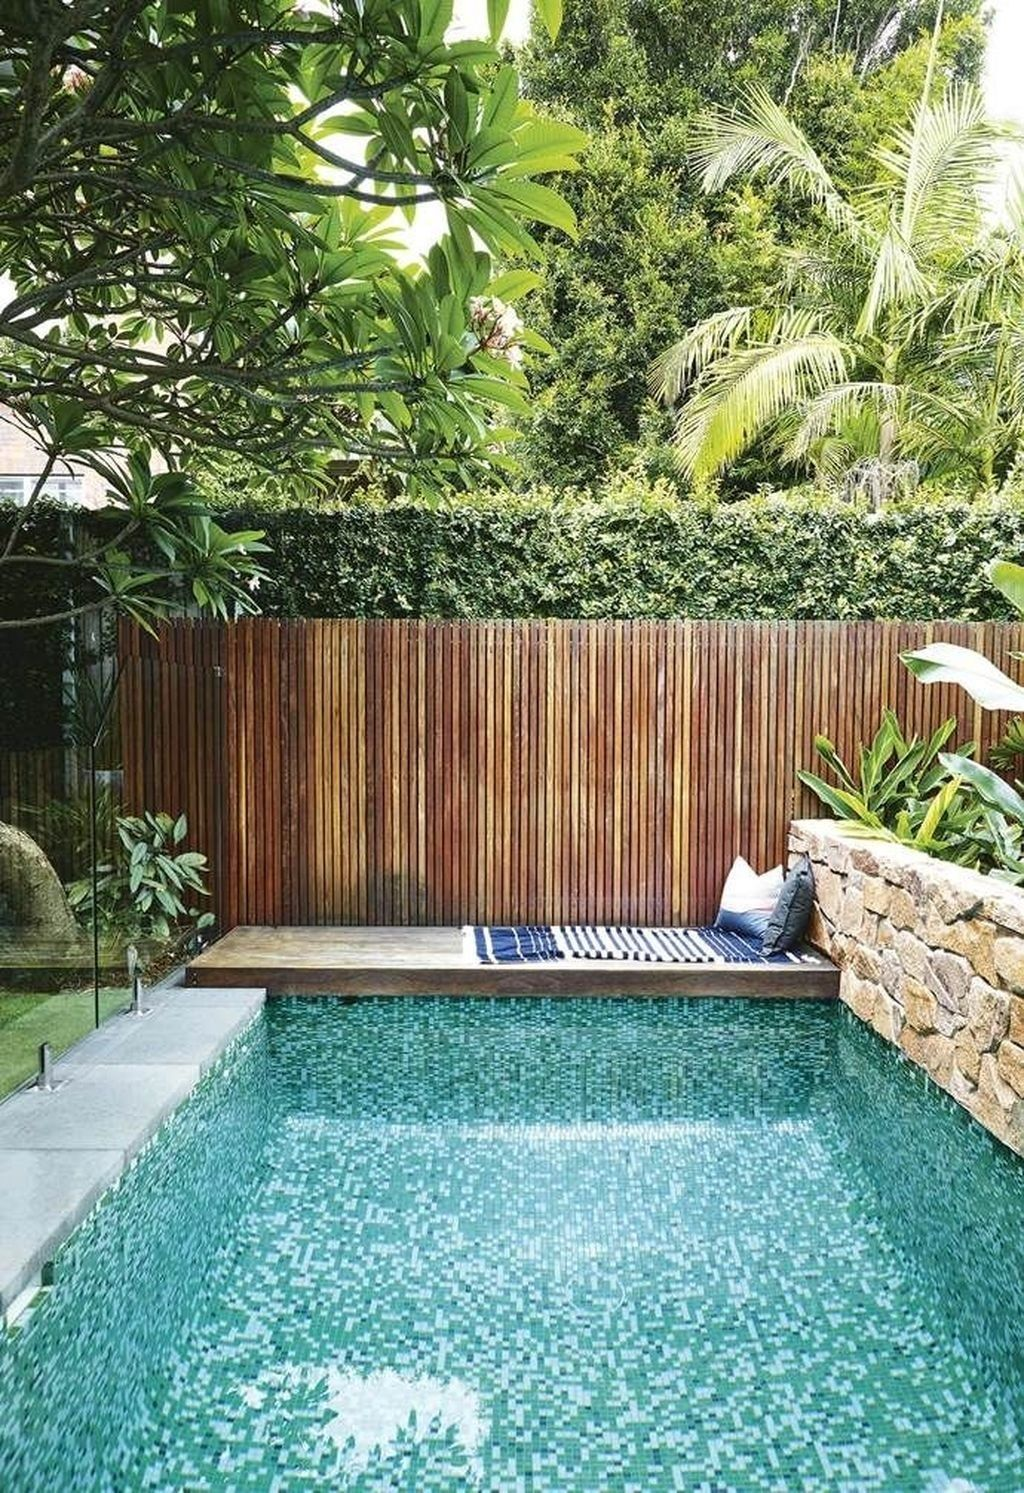 30 Amazing Natural Small Pools Design Ideas For Backyard Coodecor Backyard Pool Landscaping Small Backyard Pools Backyard Pool Designs